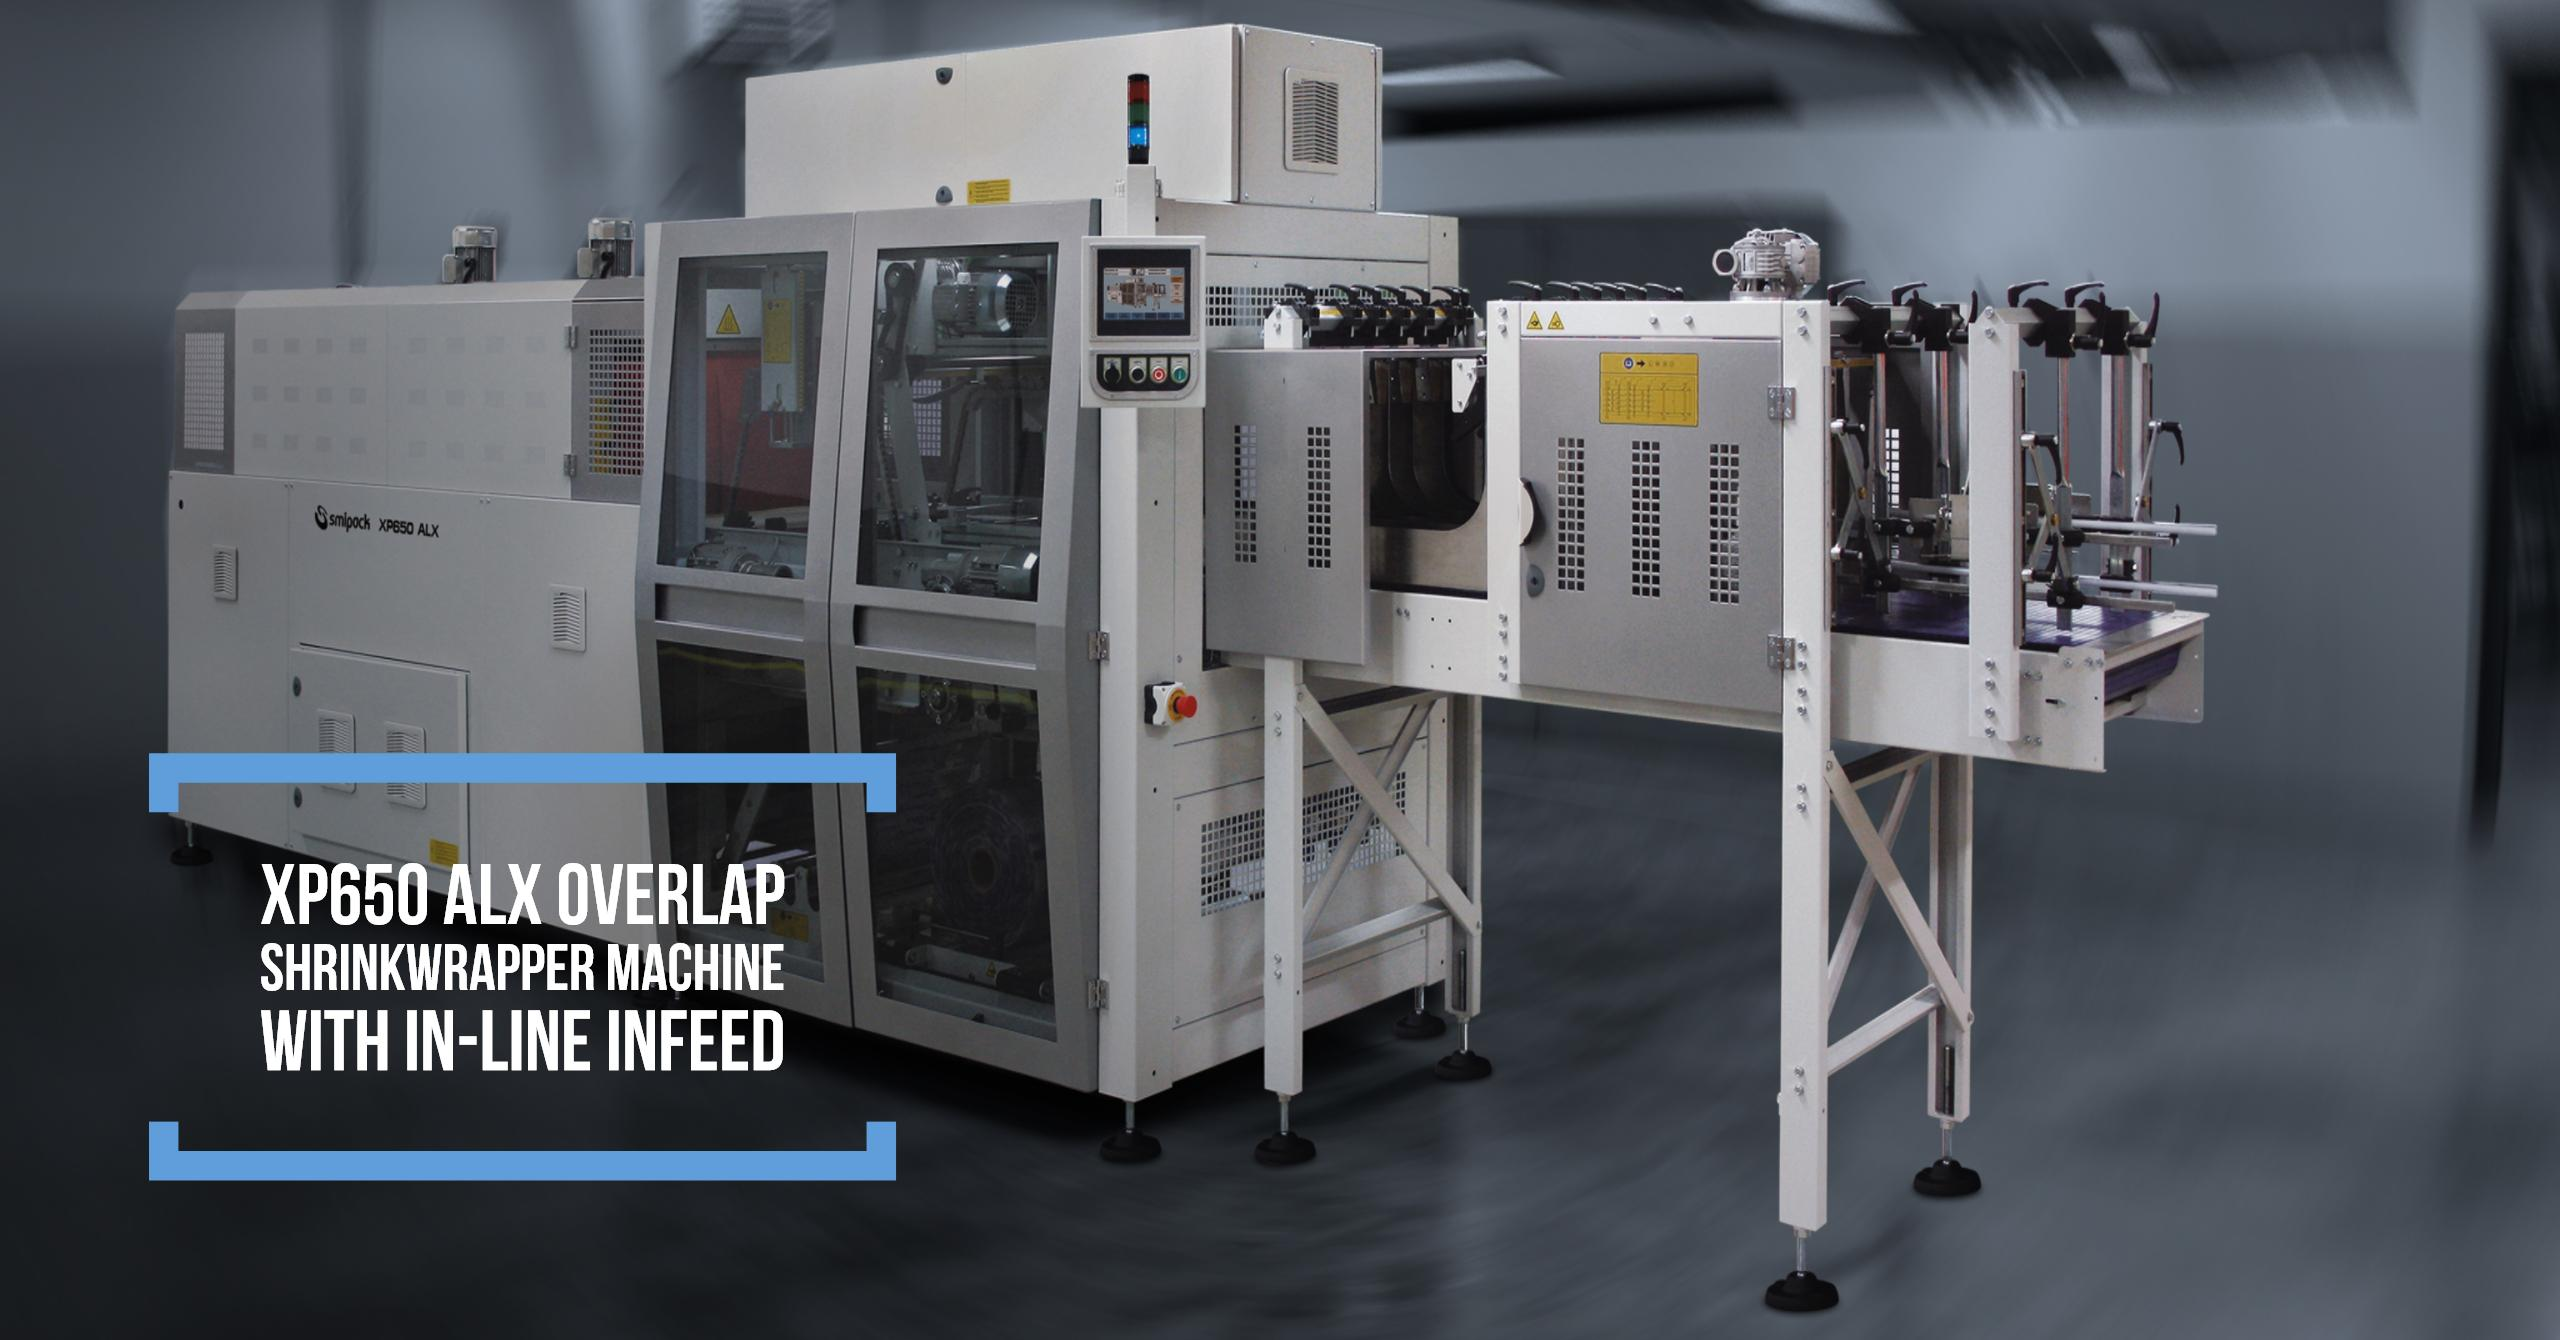 XP650 ALX Overlap shrinkwrapper machine with in-line infeed